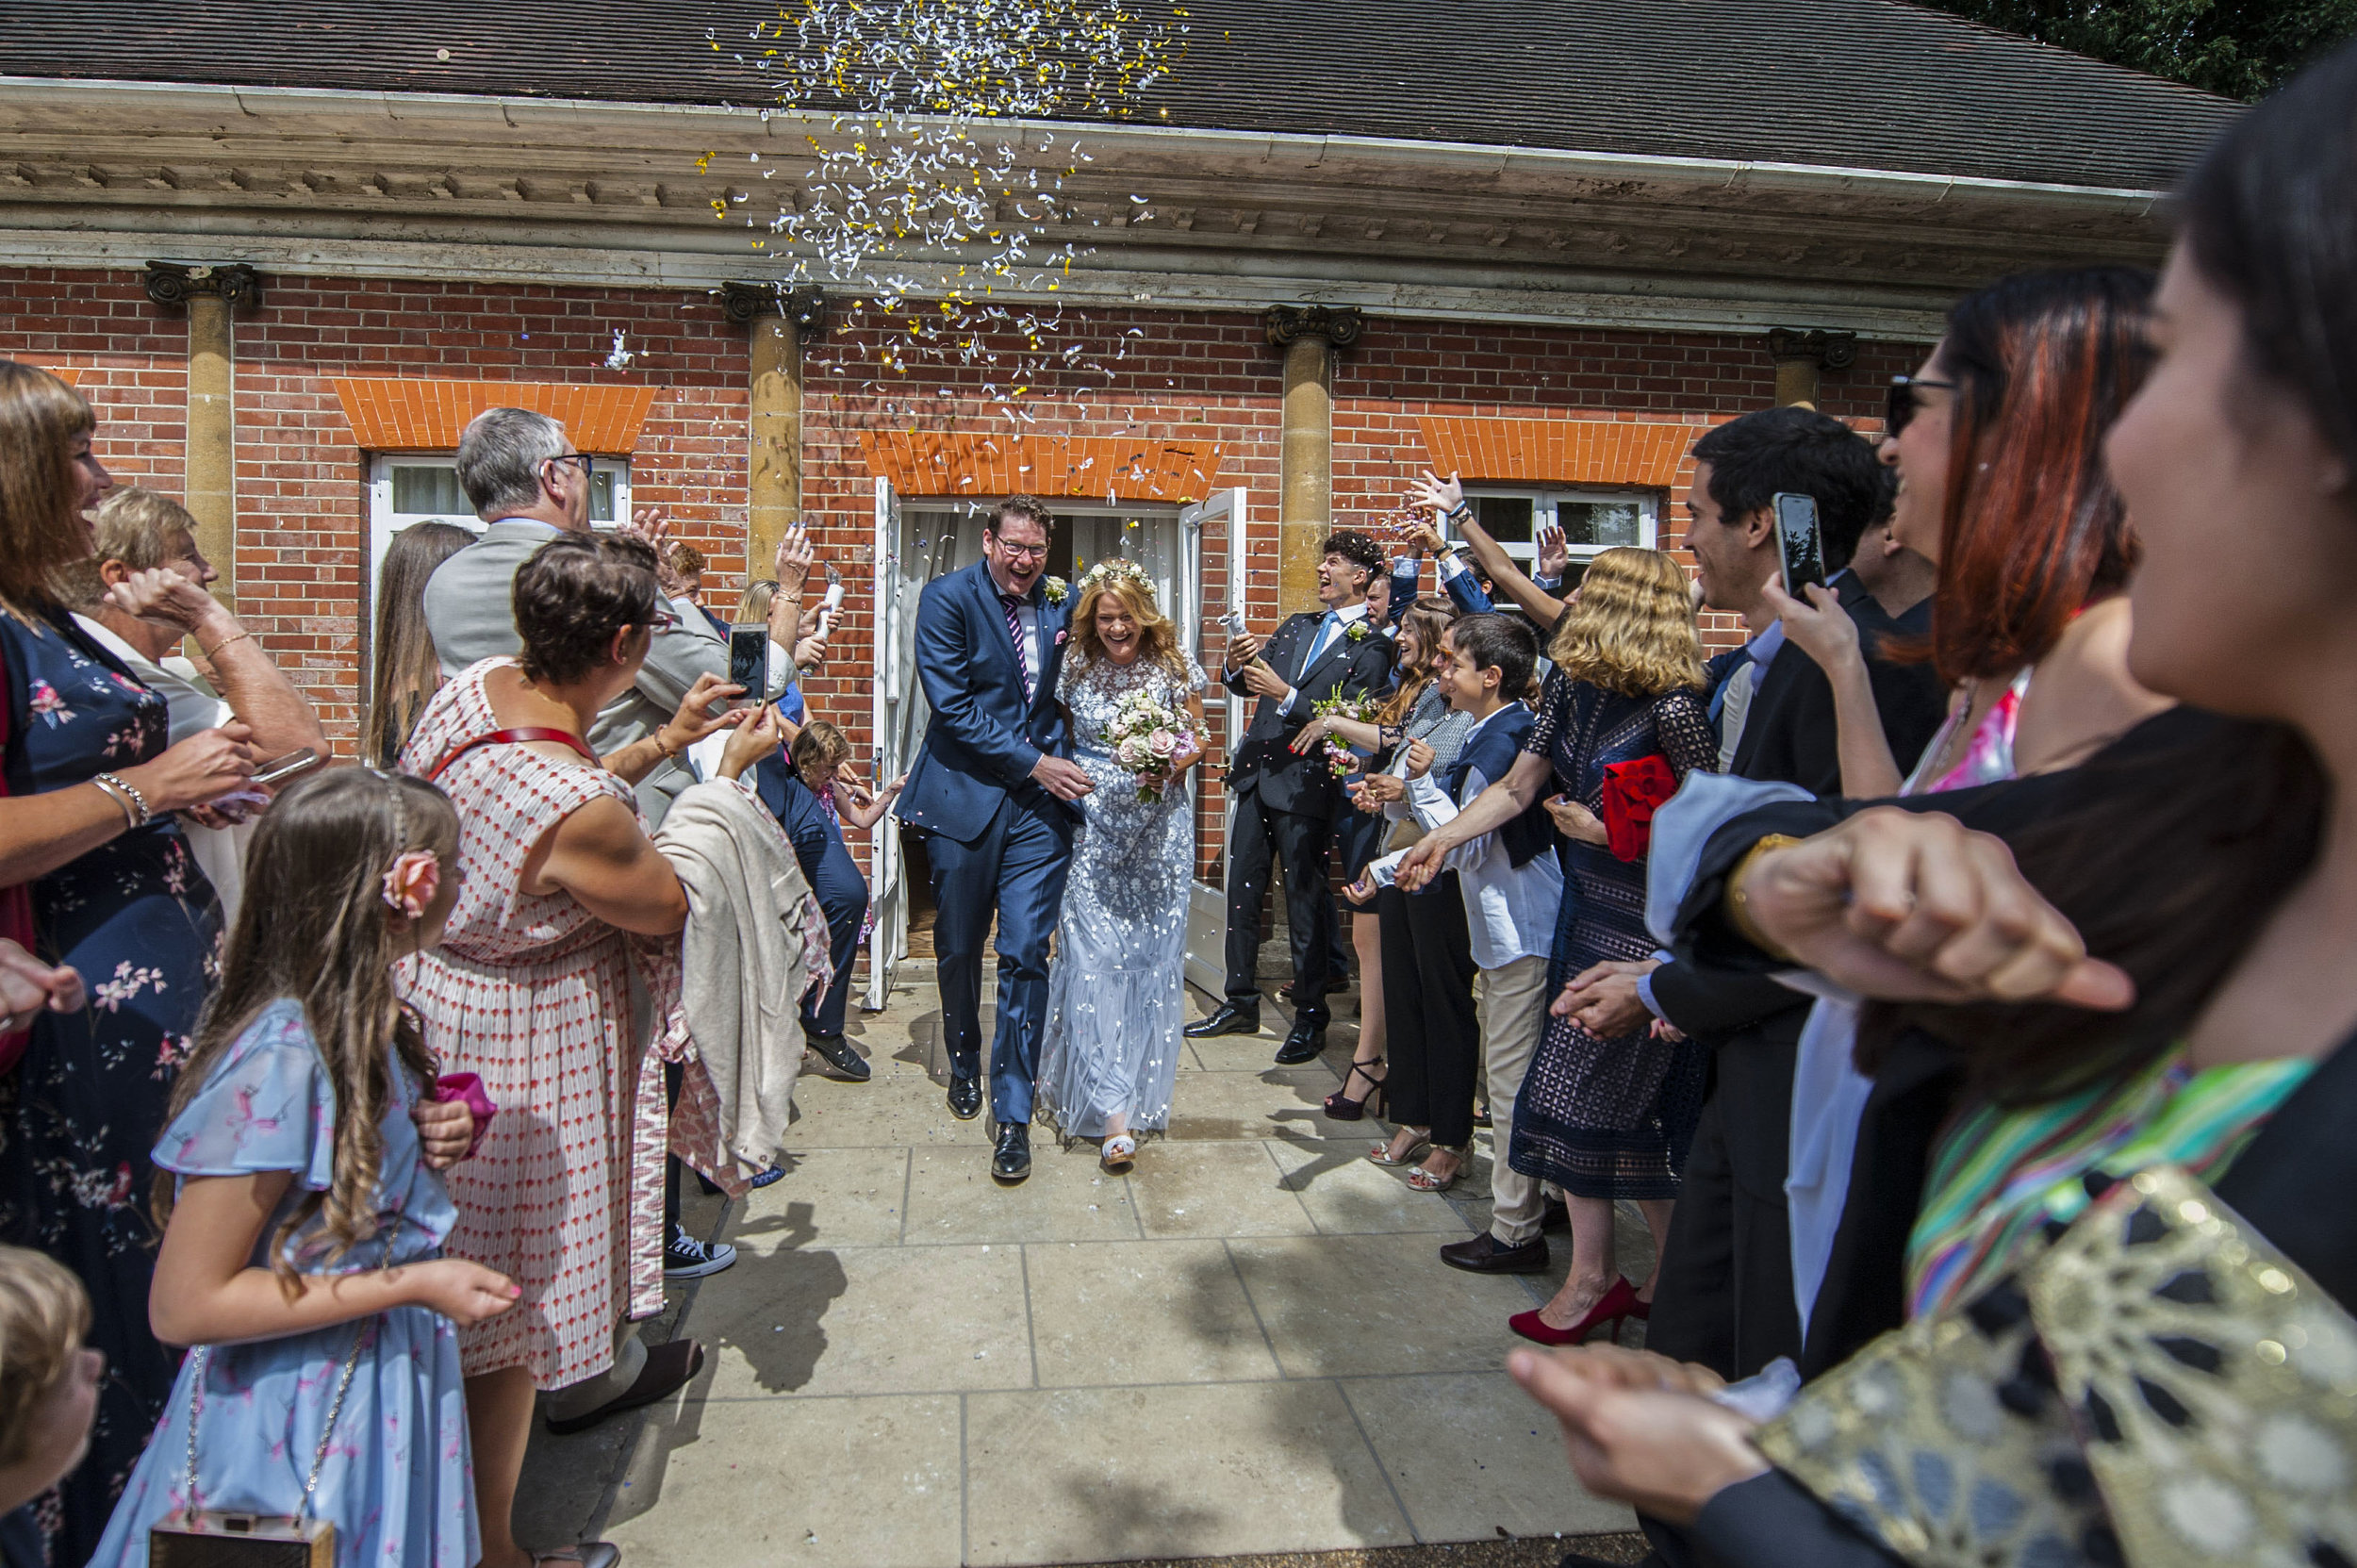 1. Make an entrance, or exit... - Experience your nearest and dearest welcome you to your table or from your ceremony as newlyweds, the cheers and applause that accompanied you will be one of the most cherished moments of the day.